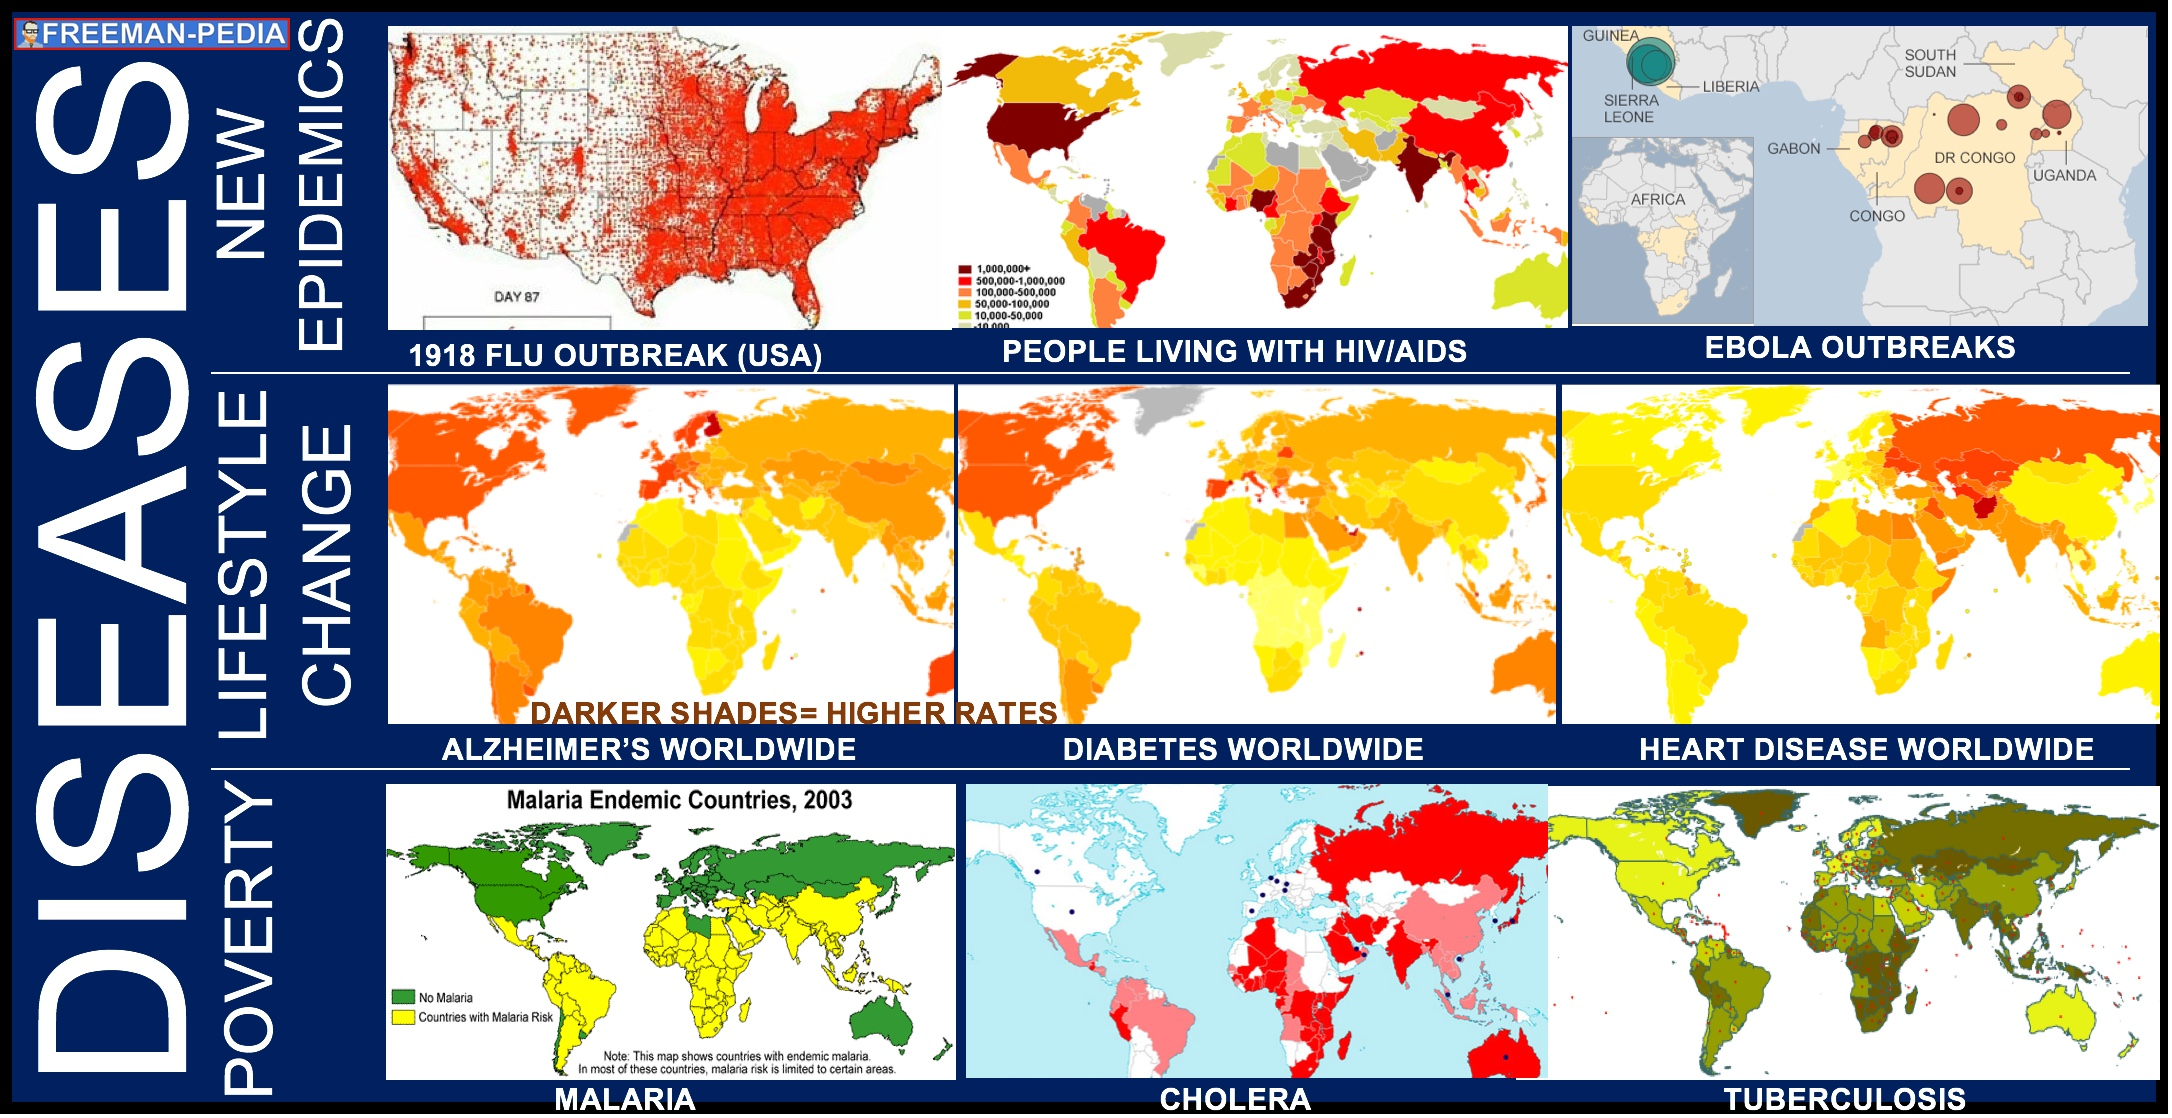 A. Diseases associated with poverty ( Malaria ,  Cholera ,  Tuberculosis )  persisted, while other  diseases emerged as new epidemics ( 1918 Flu ,  HIV/AIDS ,  Ebola )  and threats to human survival. In addition,  changing lifestyles ( Diabetes ,  Heart Disease ,  Alzheimer's Disease ) and increased longevity led to higher incidence of certain diseases .